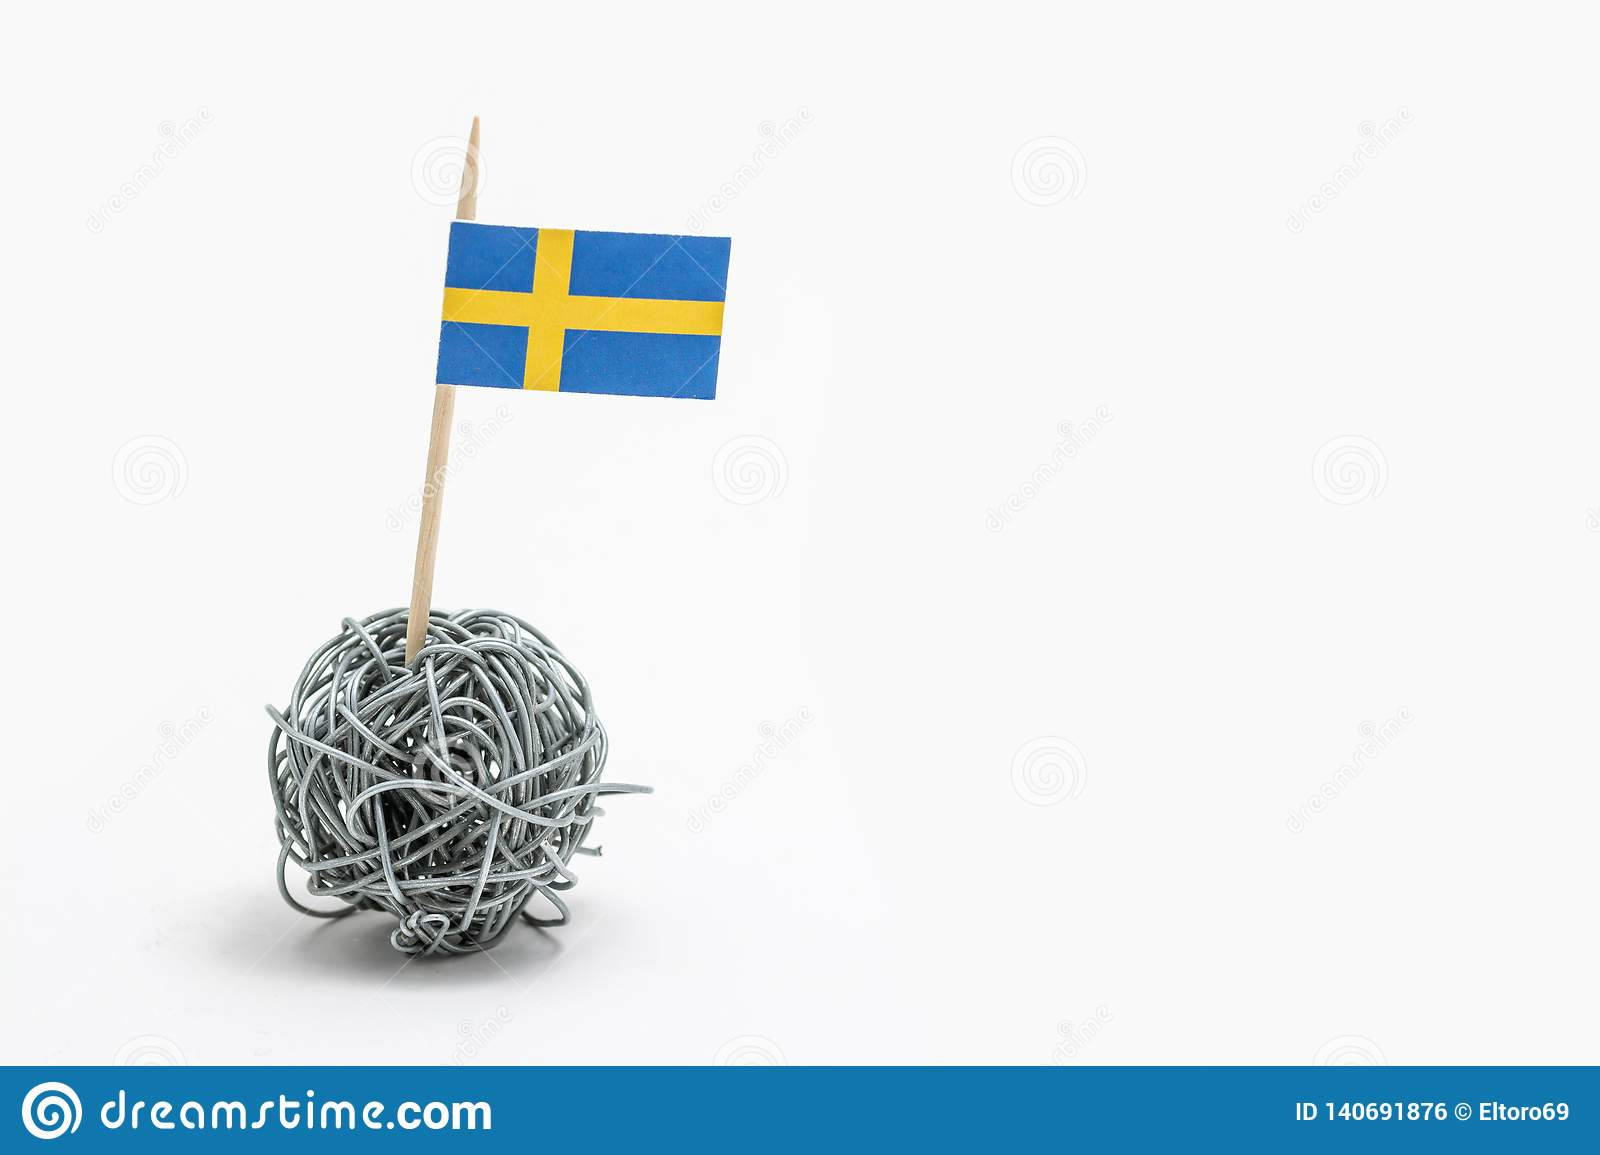 The Hand Made Flag Of The Sweden On Wire Ball Stock Photo - Image of